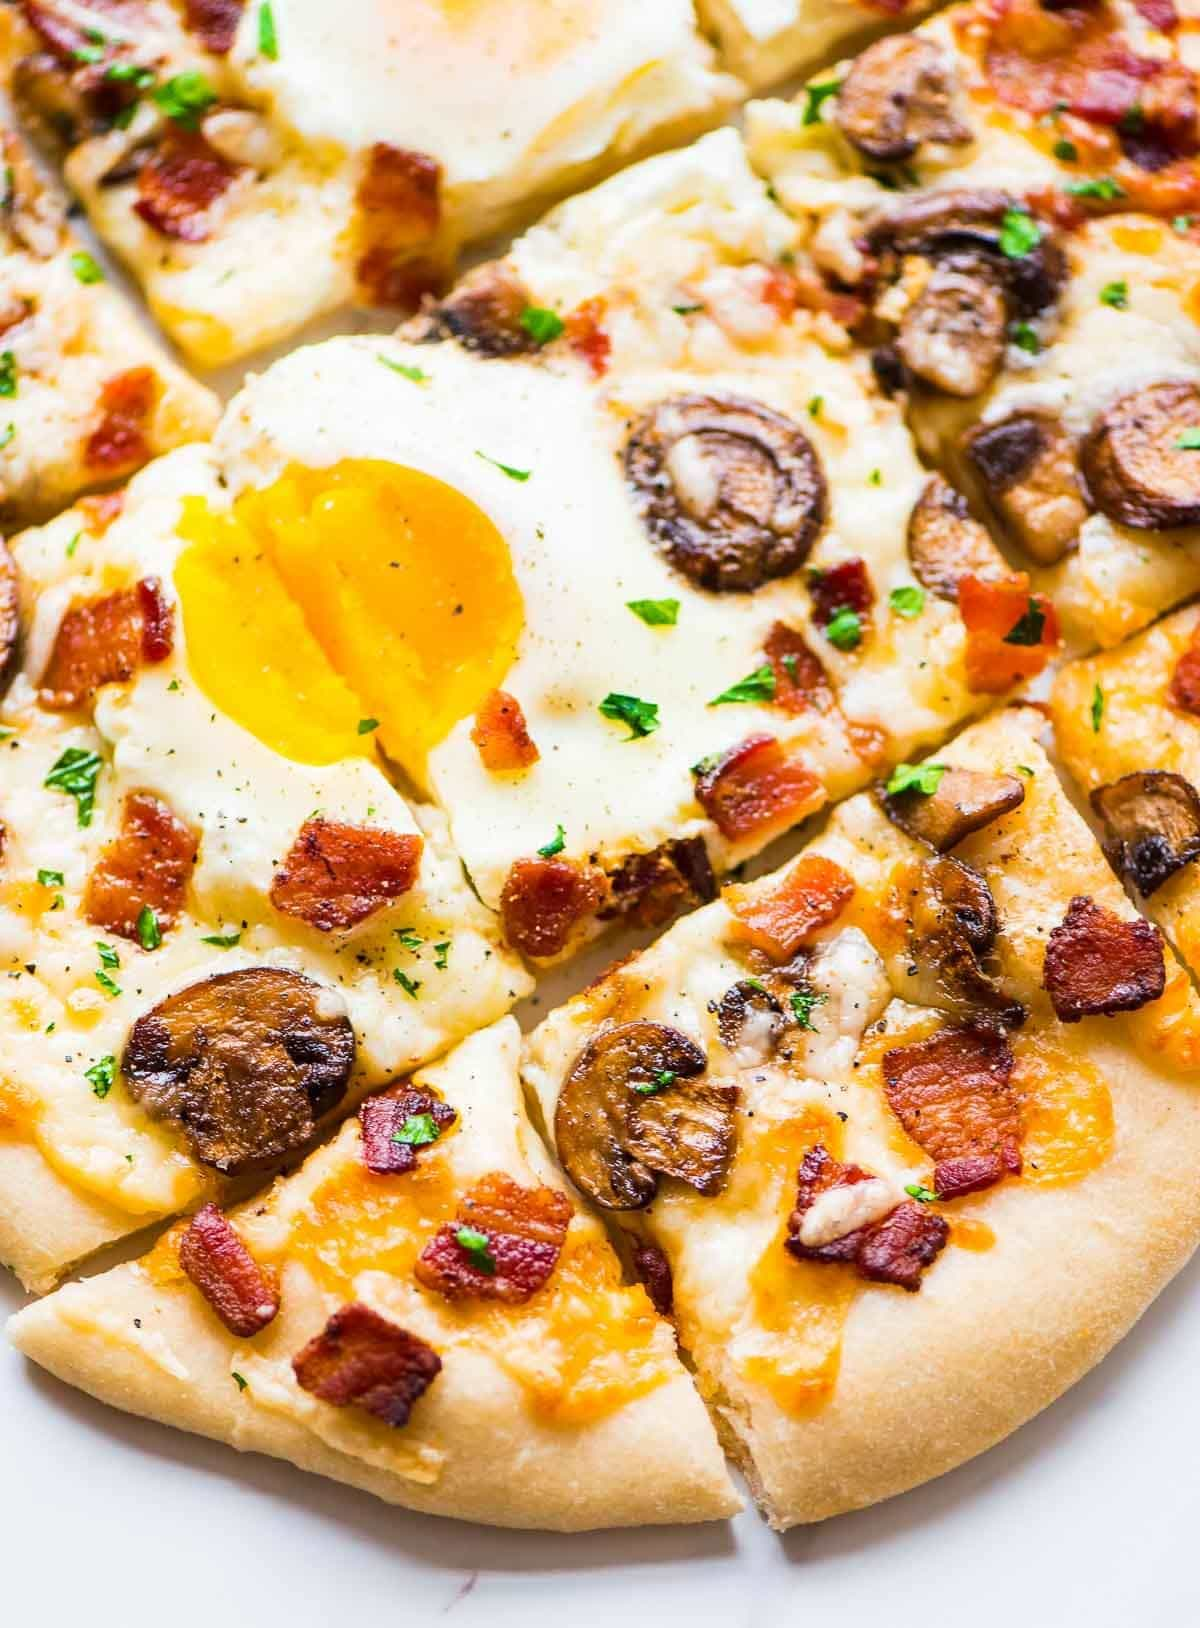 Carbonara Pizza – Garlic, crispy bacon, and creamy sunny-side up eggs. Everything you love about carbonara pasta, turned into a delicious homemade pizza! Recipe at wellplated.com | @wellplated